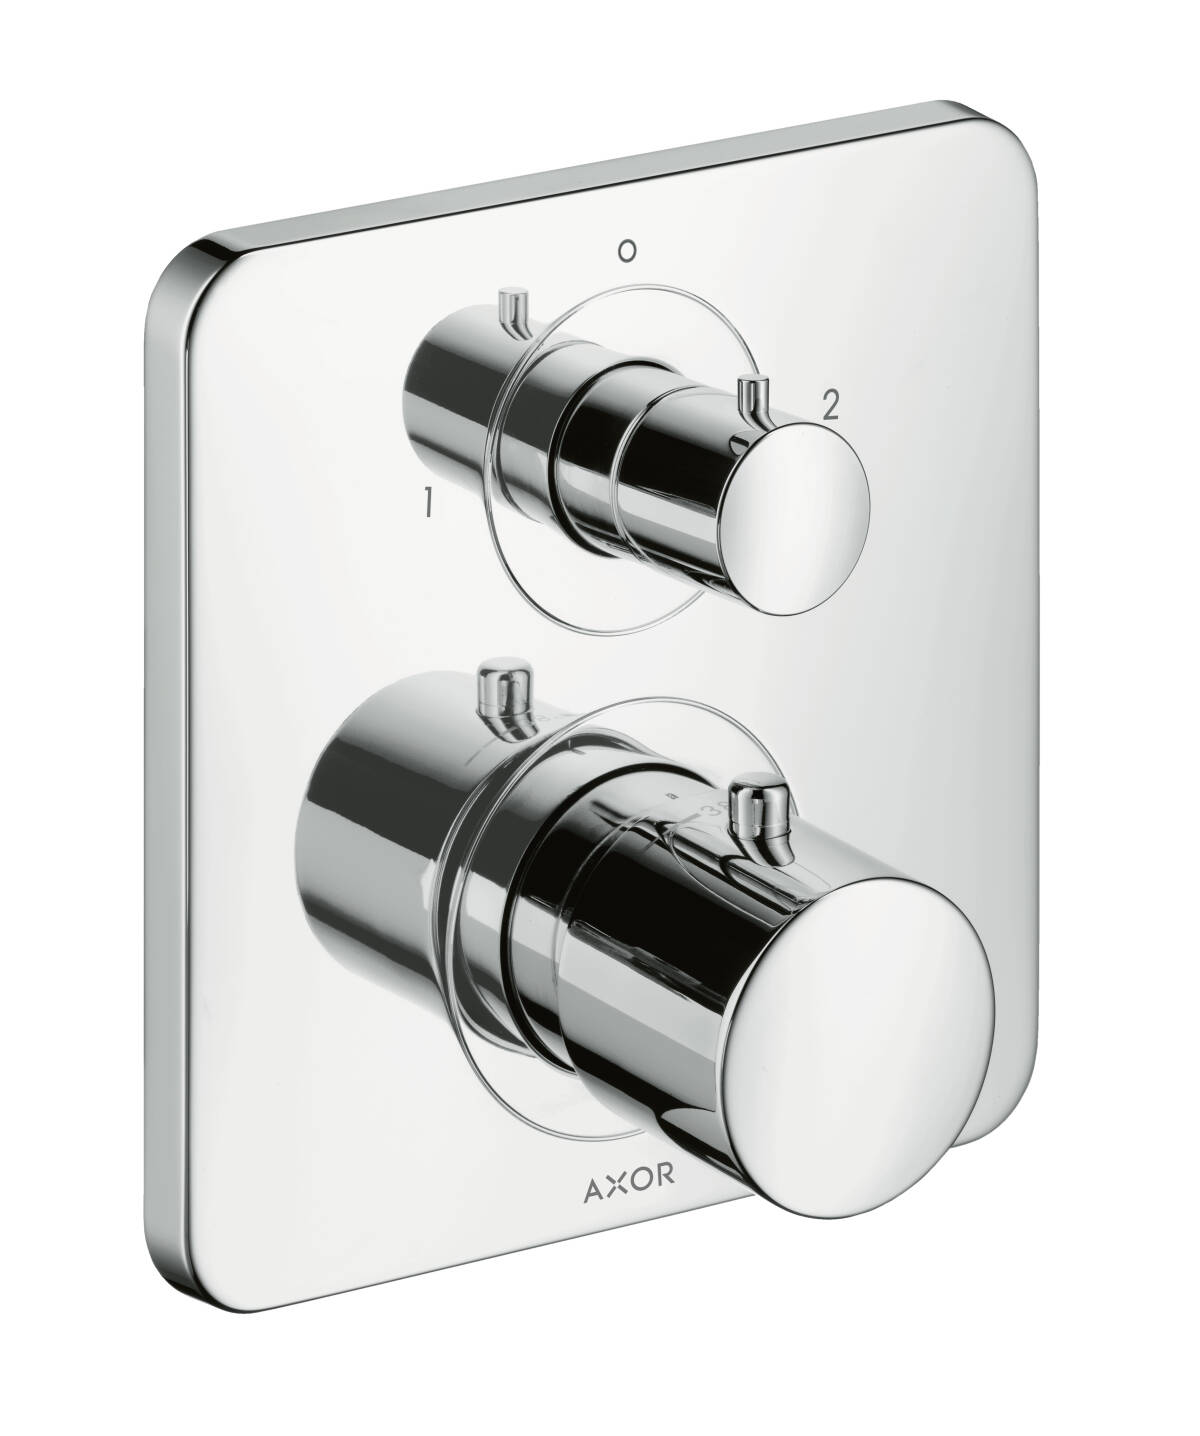 Thermostat for concealed installation with shut-off/ diverter valve, Chrome, 34725000